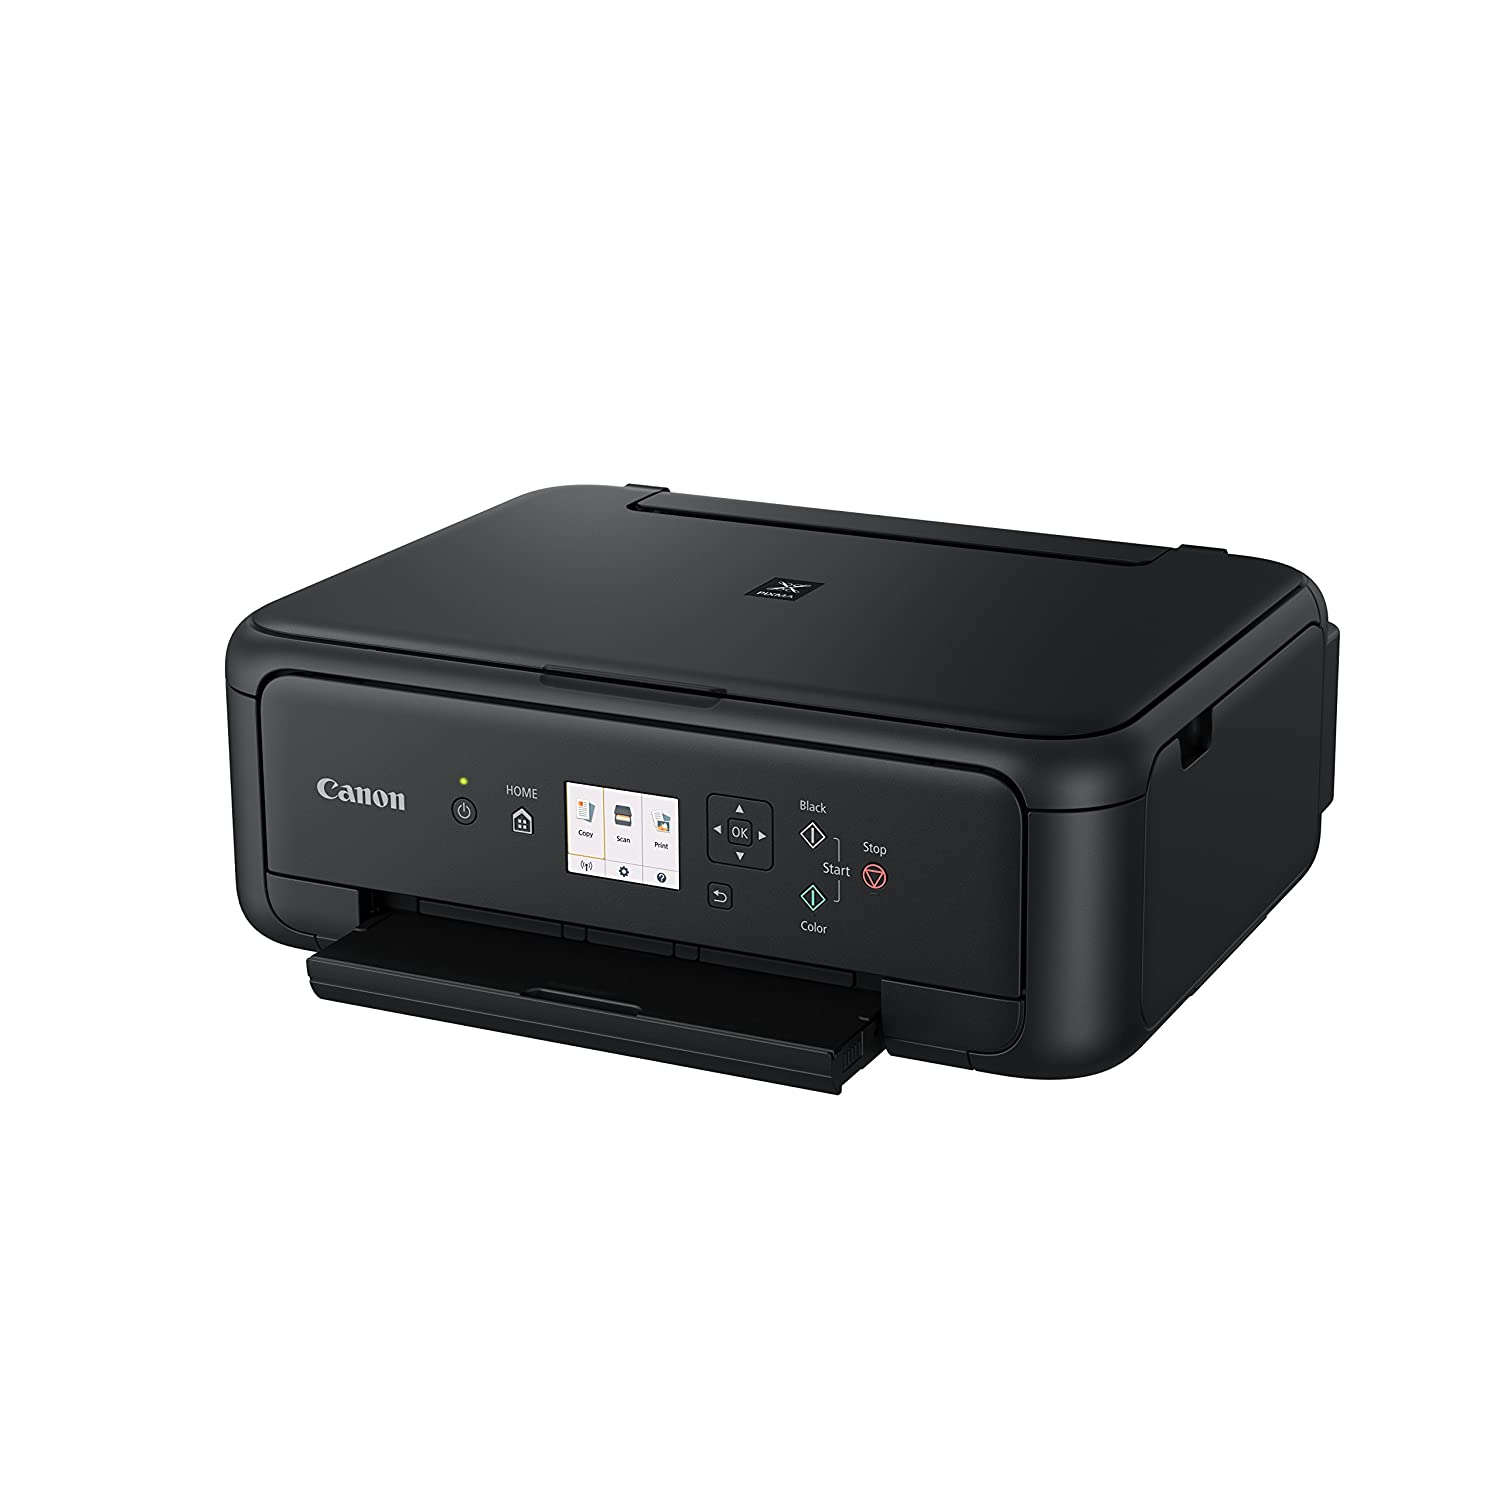 Canon PIXMA TS5150 3-in-1 Printer - Black